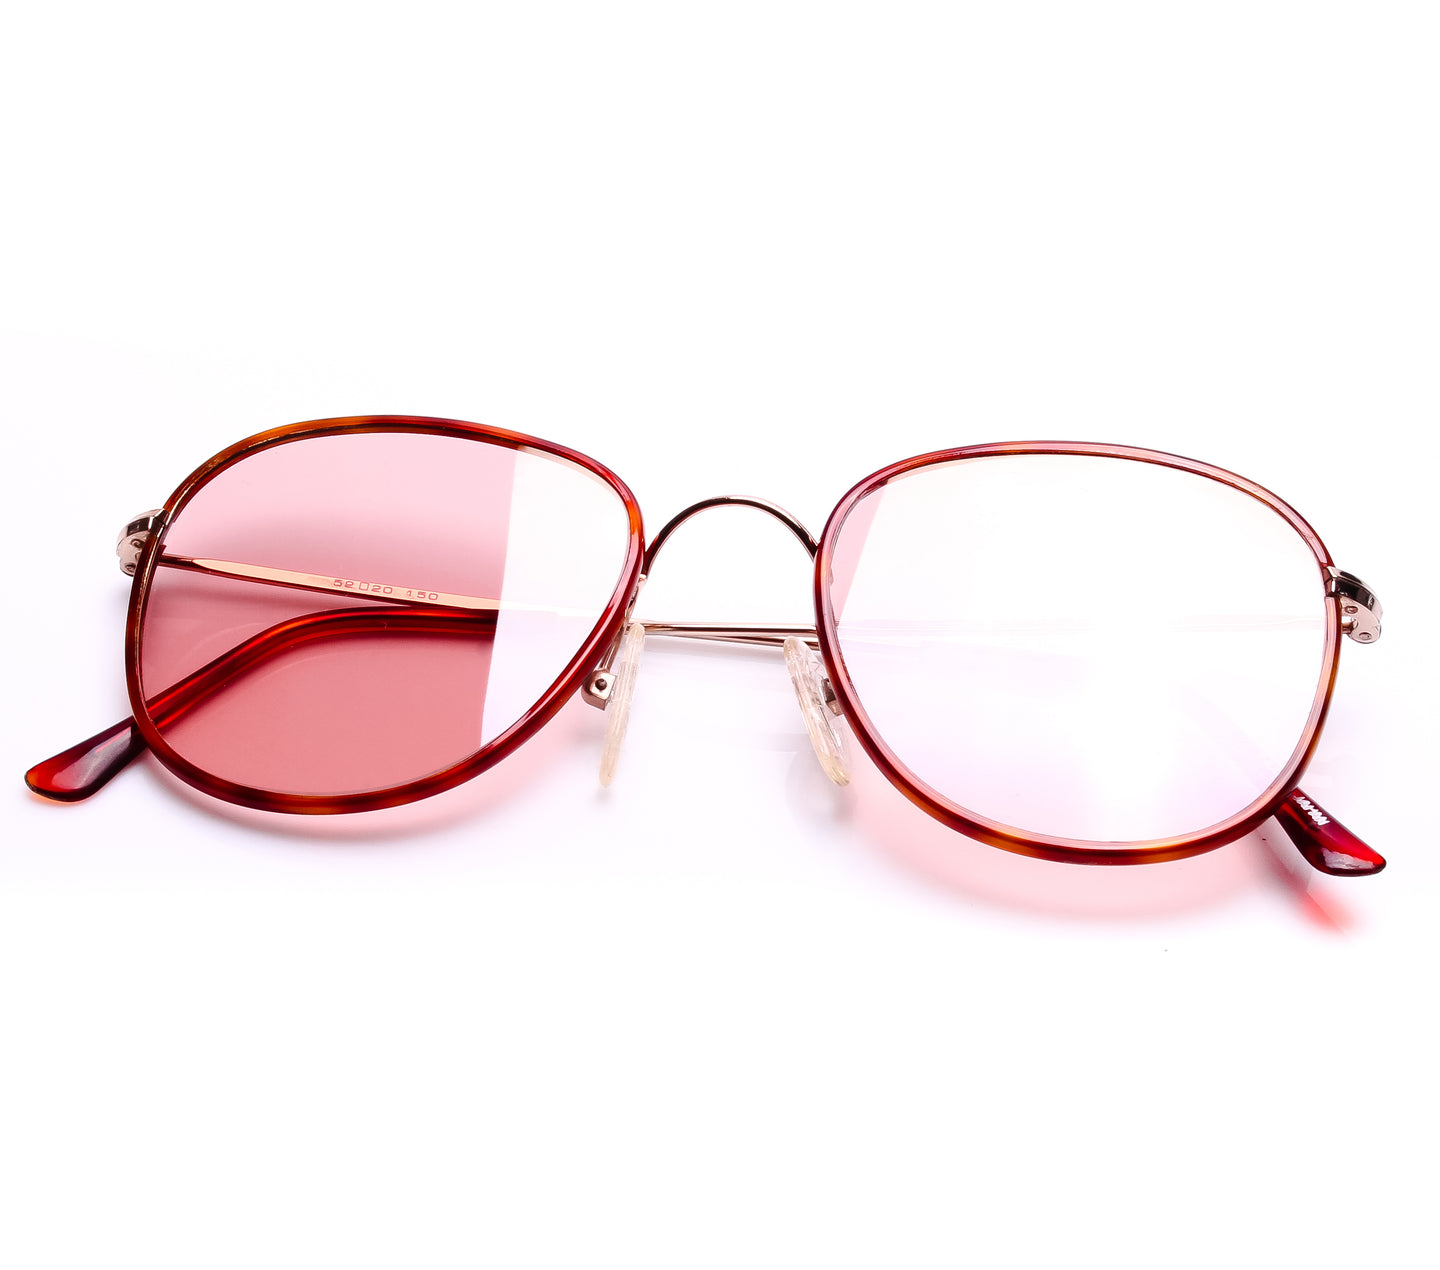 Flossy Deluxe Dusty Rose Thumbnail, VF by Vintage Frames , glasses frames, eyeglasses online, eyeglass frames, mens glasses, womens glasses, buy glasses online, designer eyeglasses, vintage sunglasses, retro sunglasses, vintage glasses, sunglass, eyeglass, glasses, lens, vintage frames company, vf